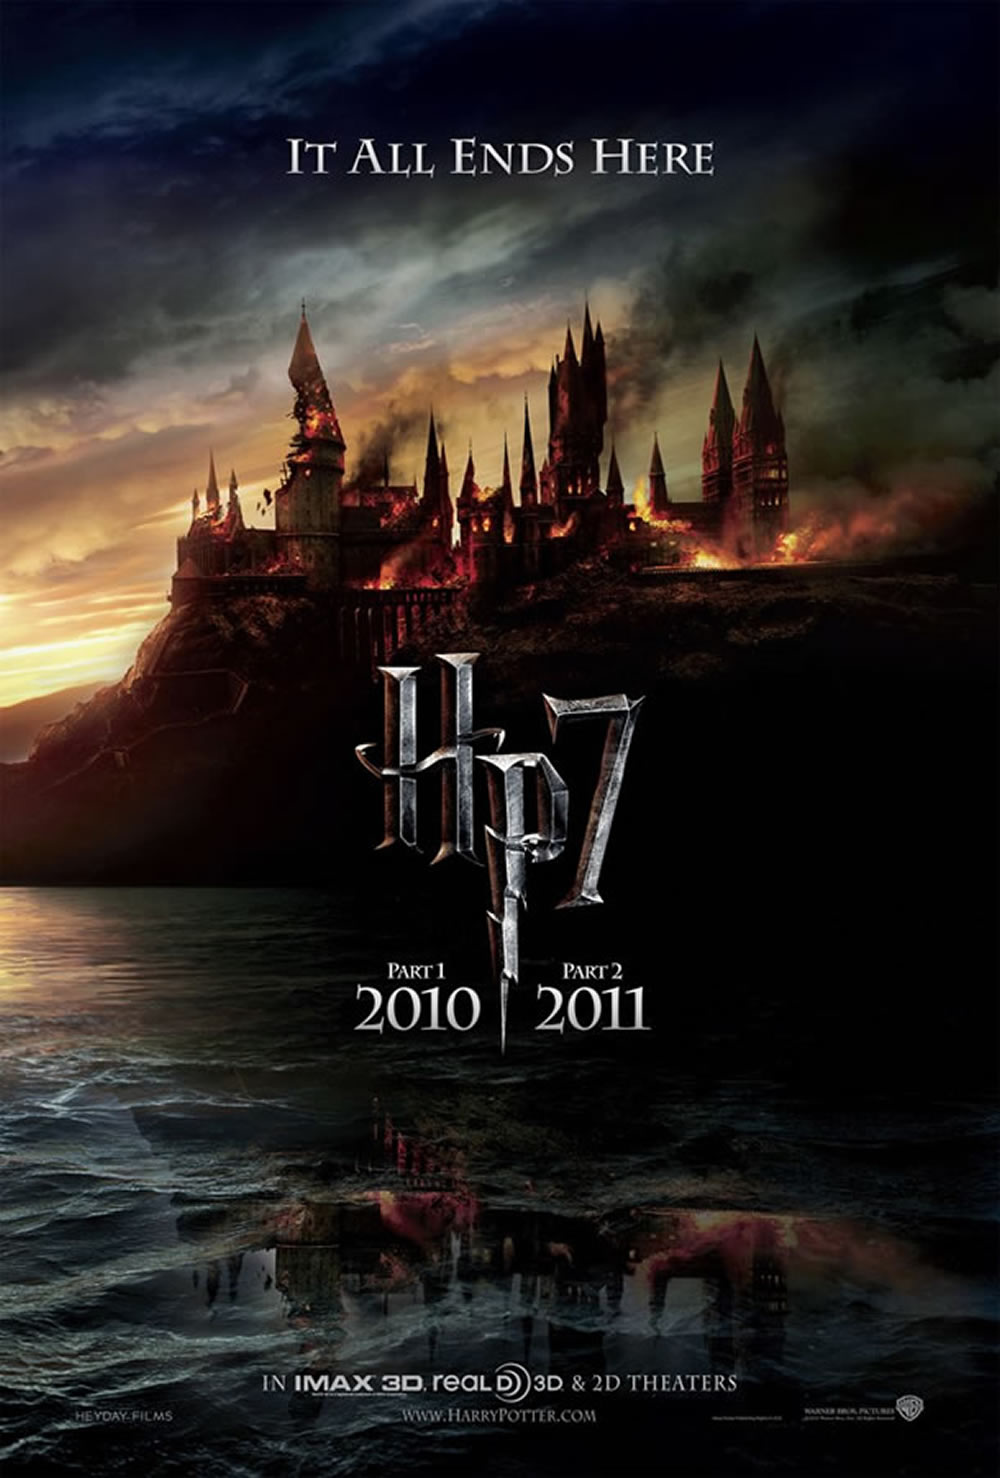 Harry Potter and the Deathly Hallows teaser poster